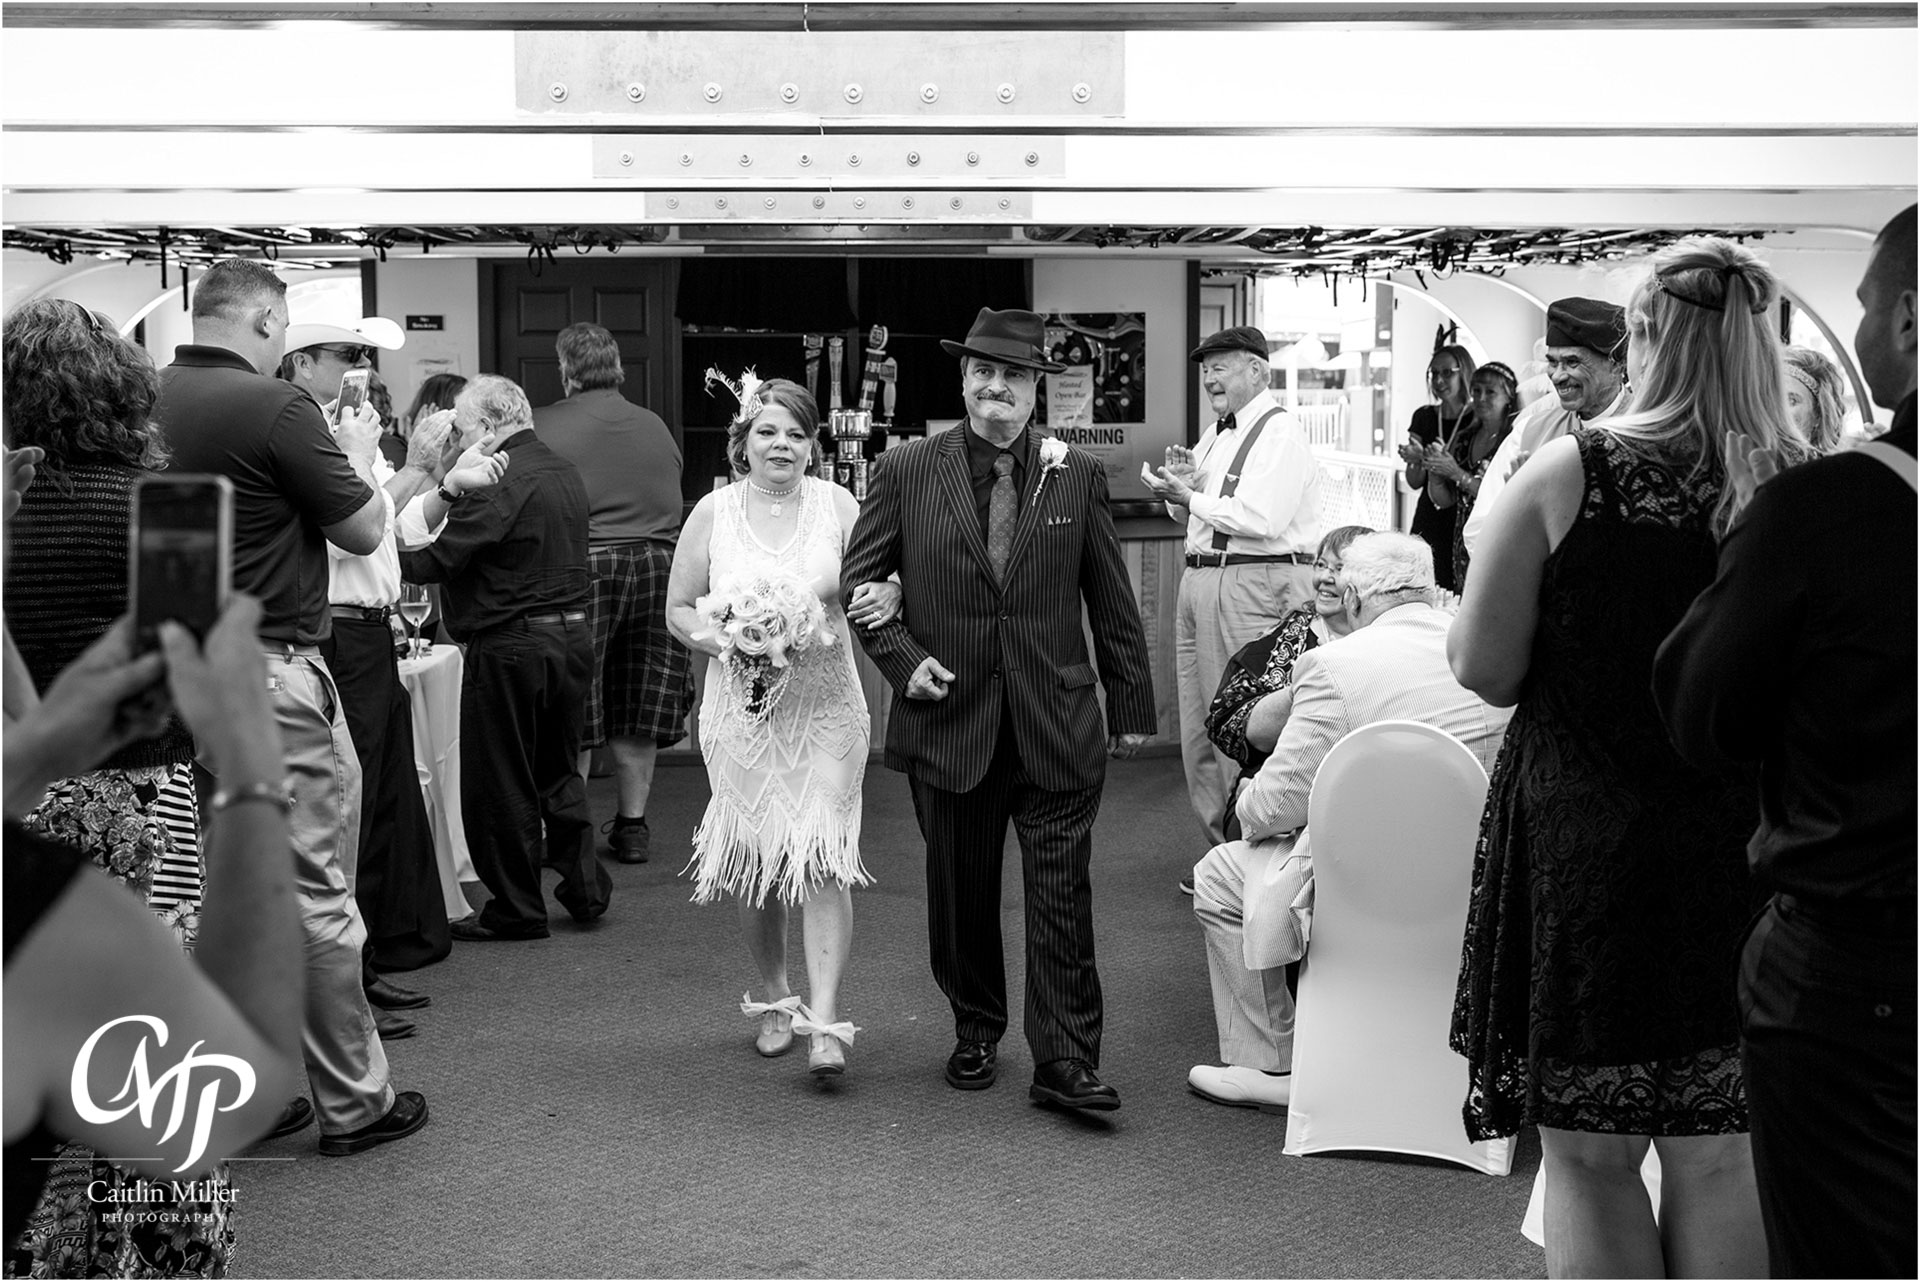 bombard-24.jpg from Jan and Robert's vow renewal on shoreline Cruise's Adirondac Boat on Lake George, NY by Saratoga Wedding Photographer Caitlin Miller Photography. Lake George Wedding Photographer. Stamford wedding photographer. Albany wedding photographer. Shoreline Cruises Wedding Photographer. Saratoga Wedding Photographer